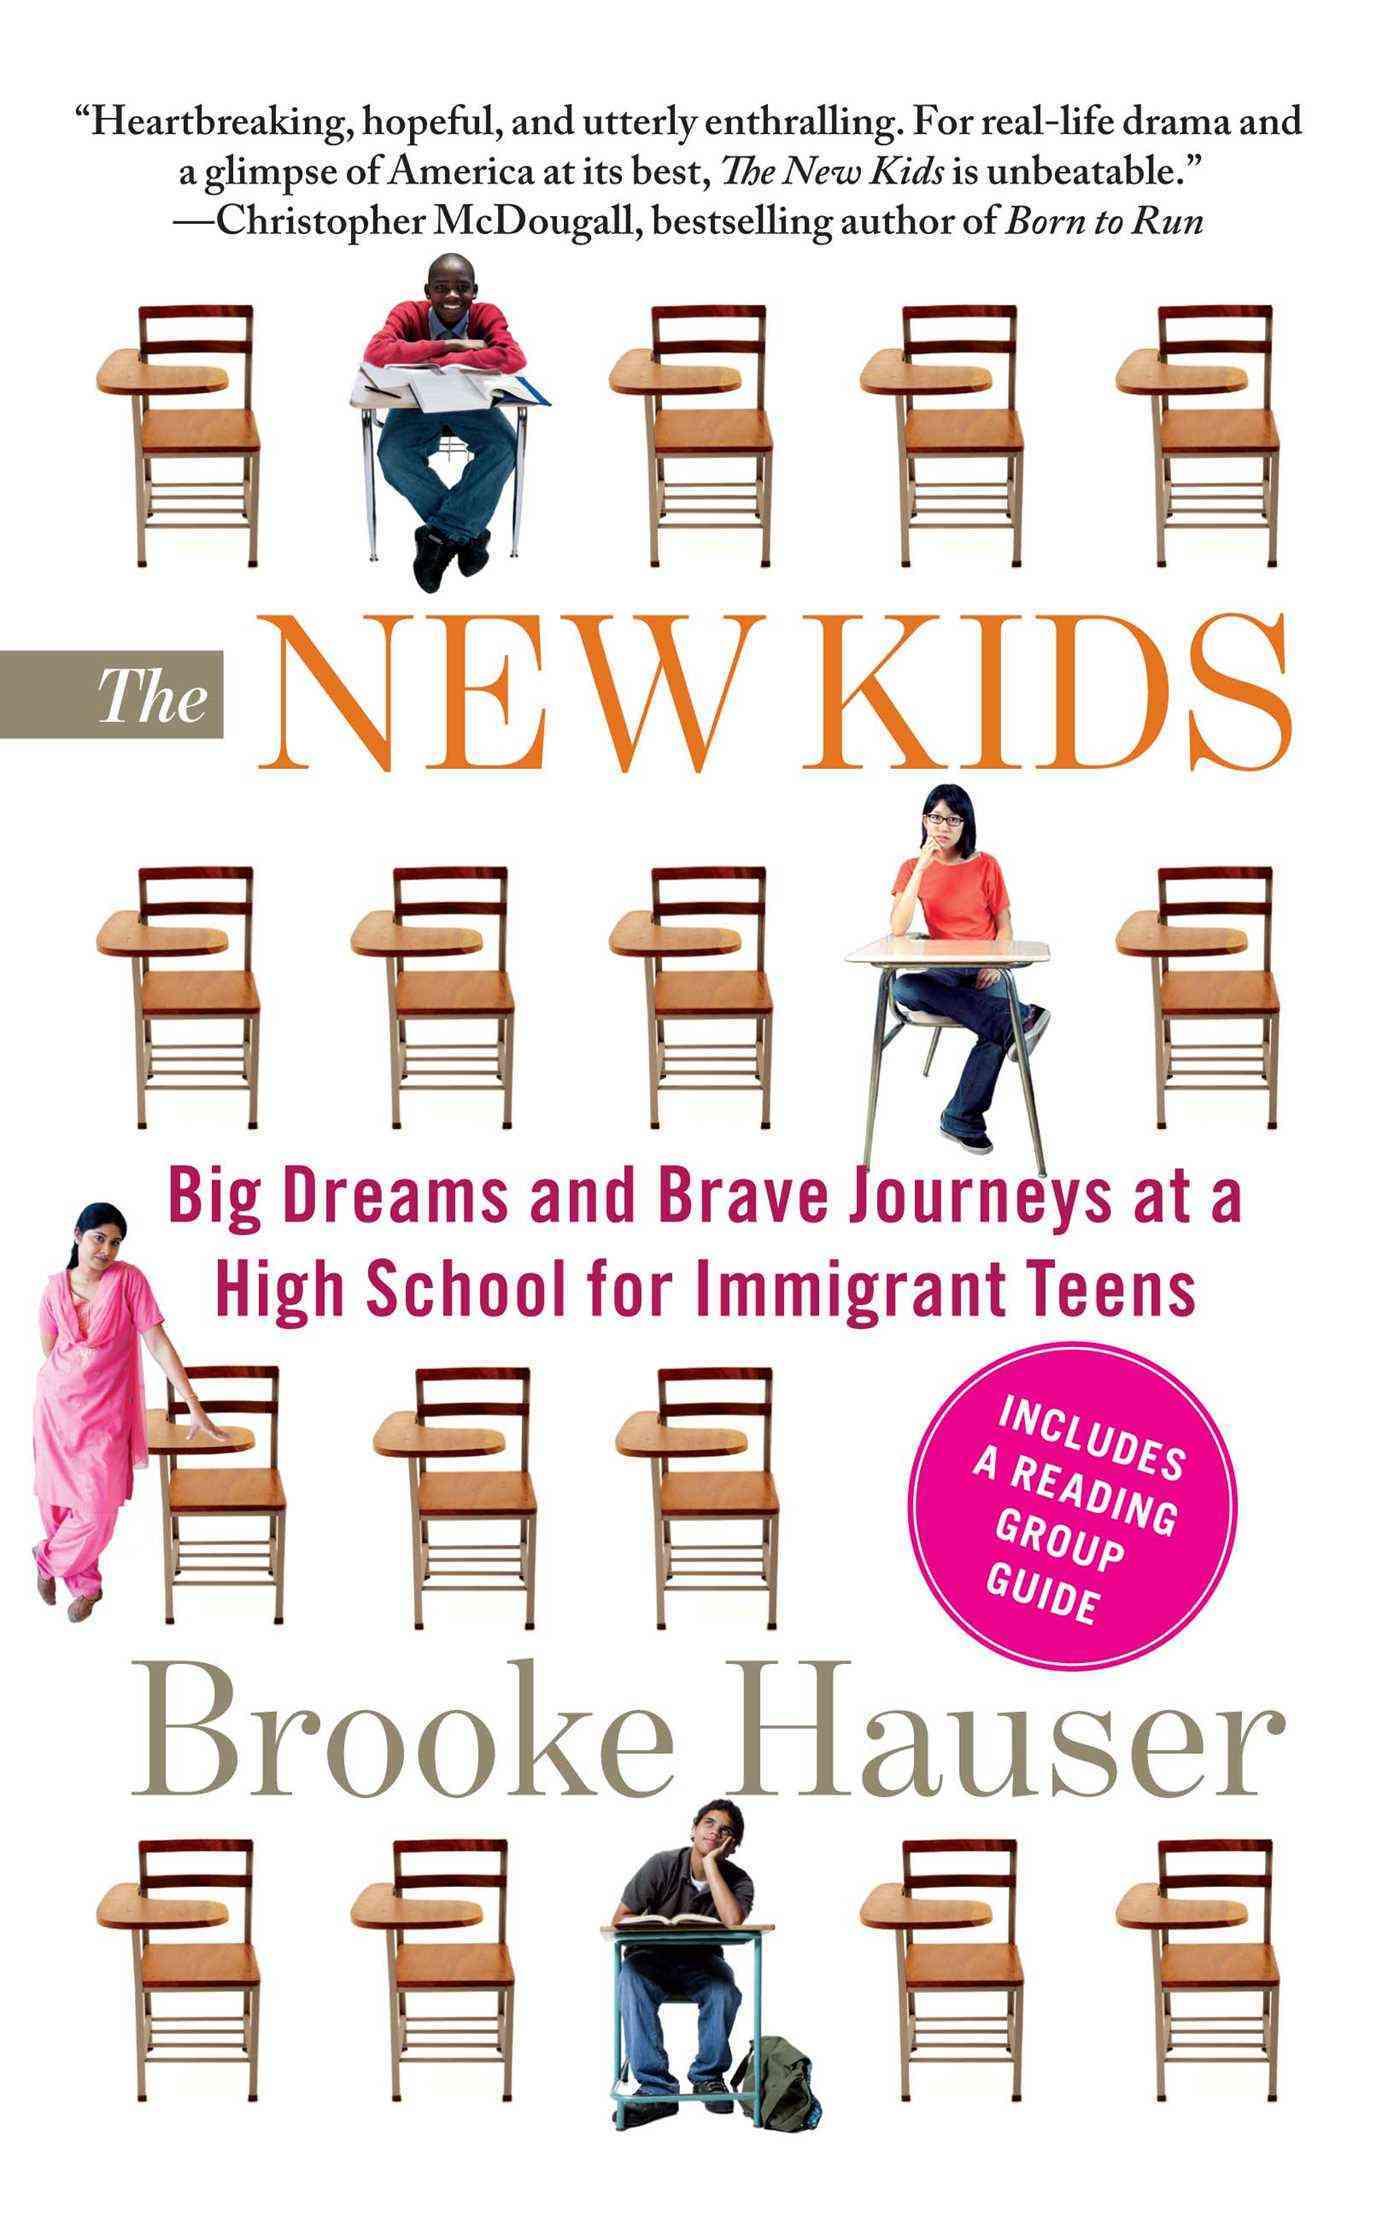 The New Kids: Big Dreams and Brave Journeys at a High School for Immigrant Teens (Paperback)